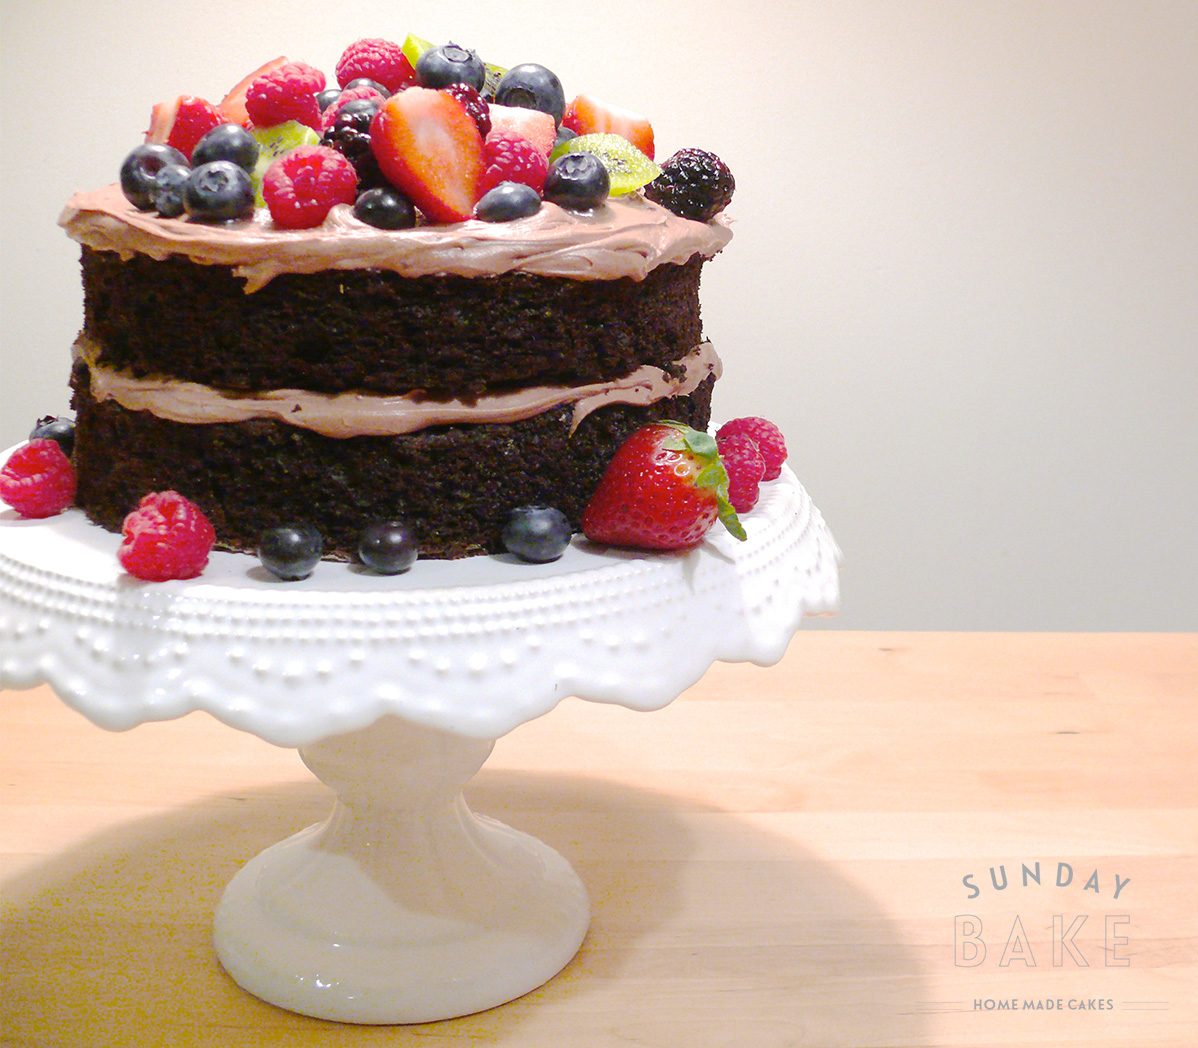 Moist chocolate cake with buttercream chocolate filling, topped with fresh berries